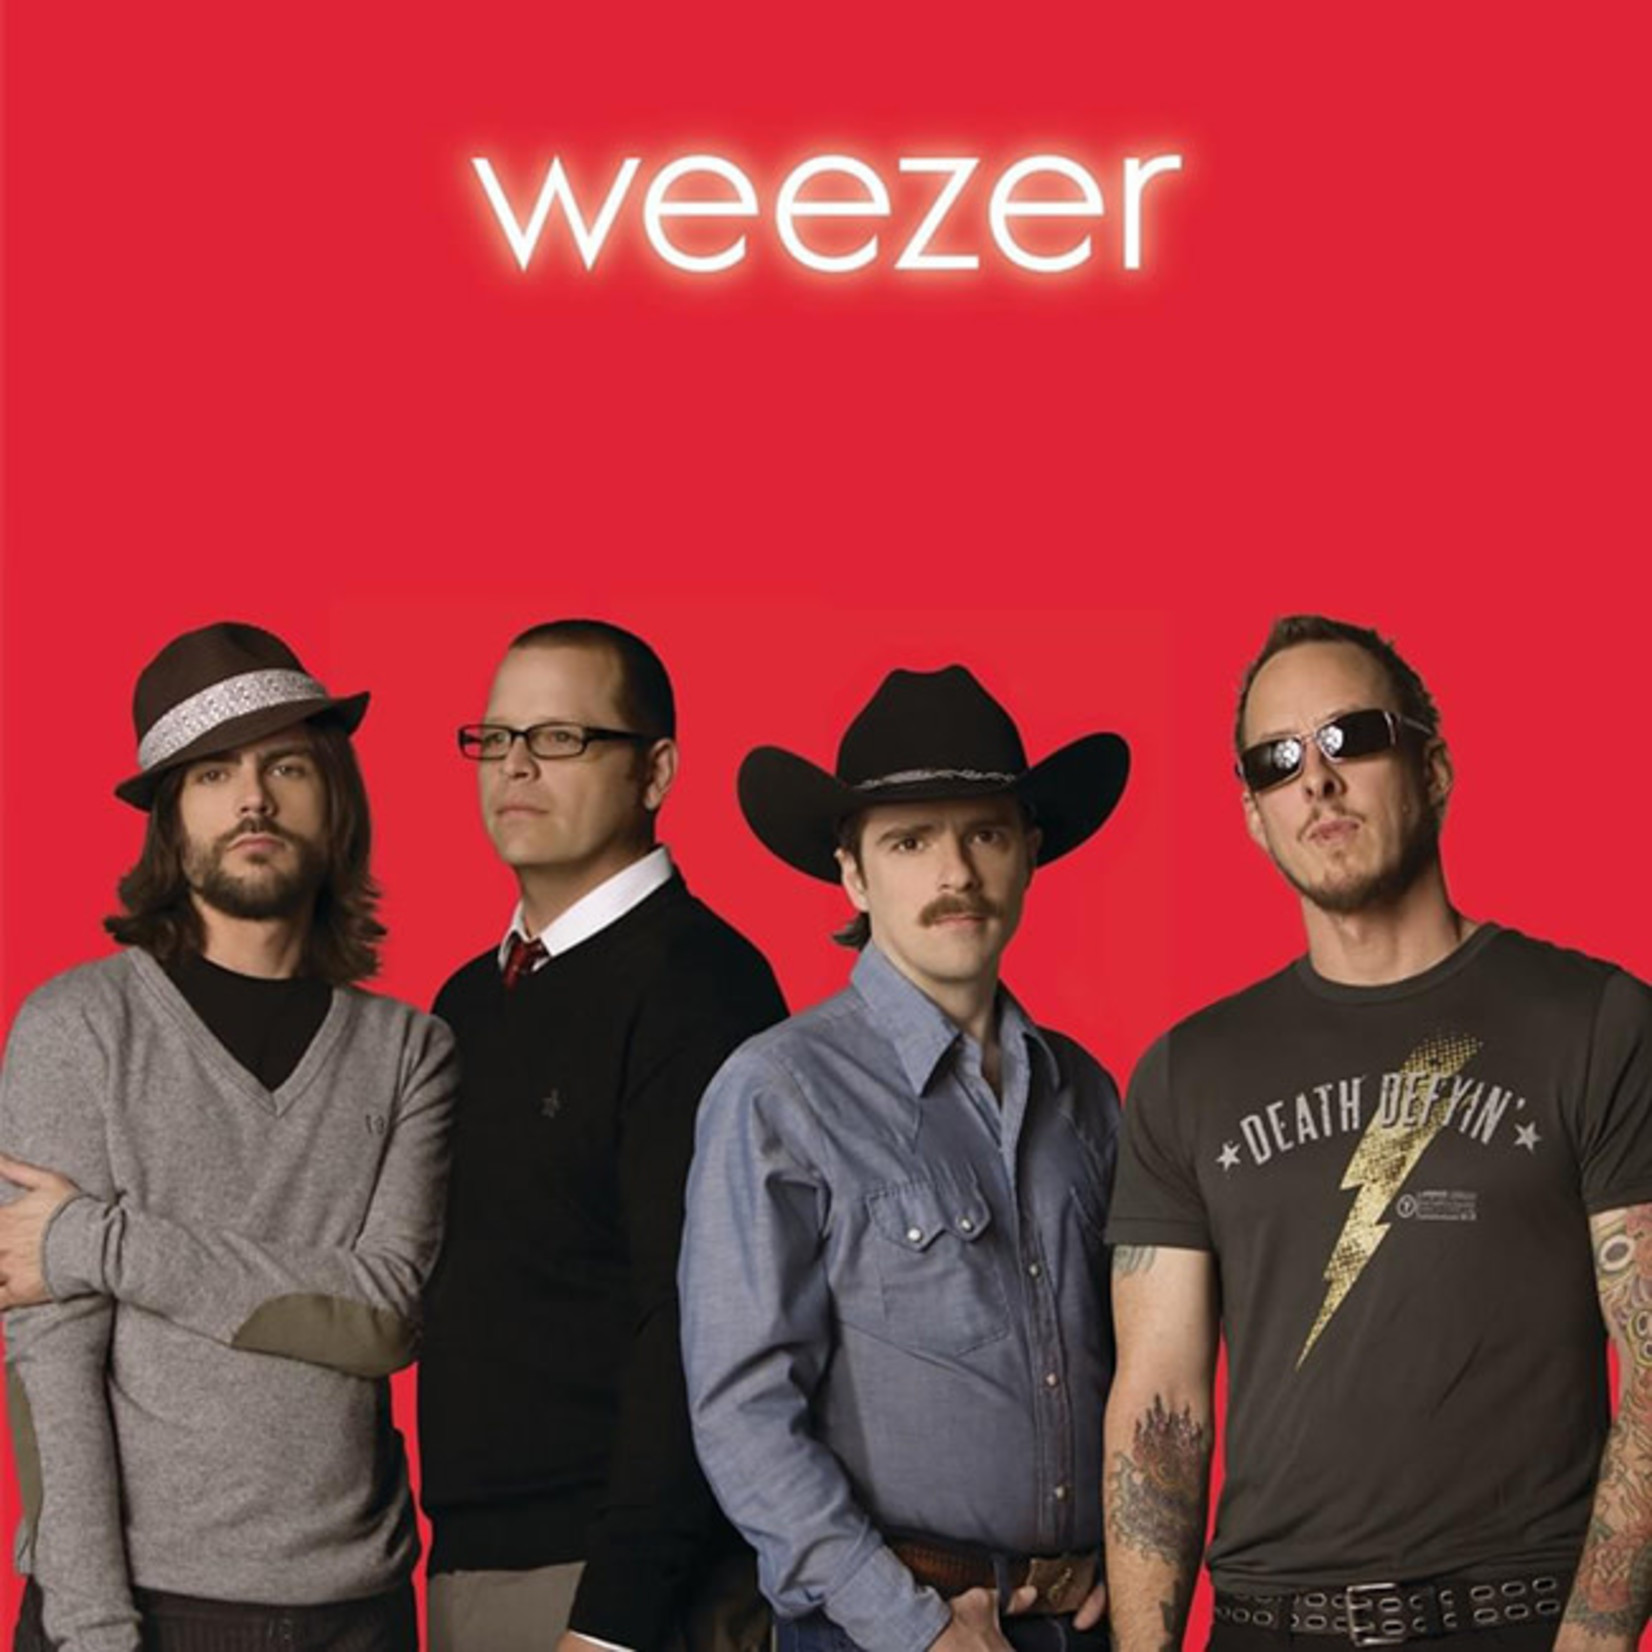 [New] Weezer: self-titled (red album)